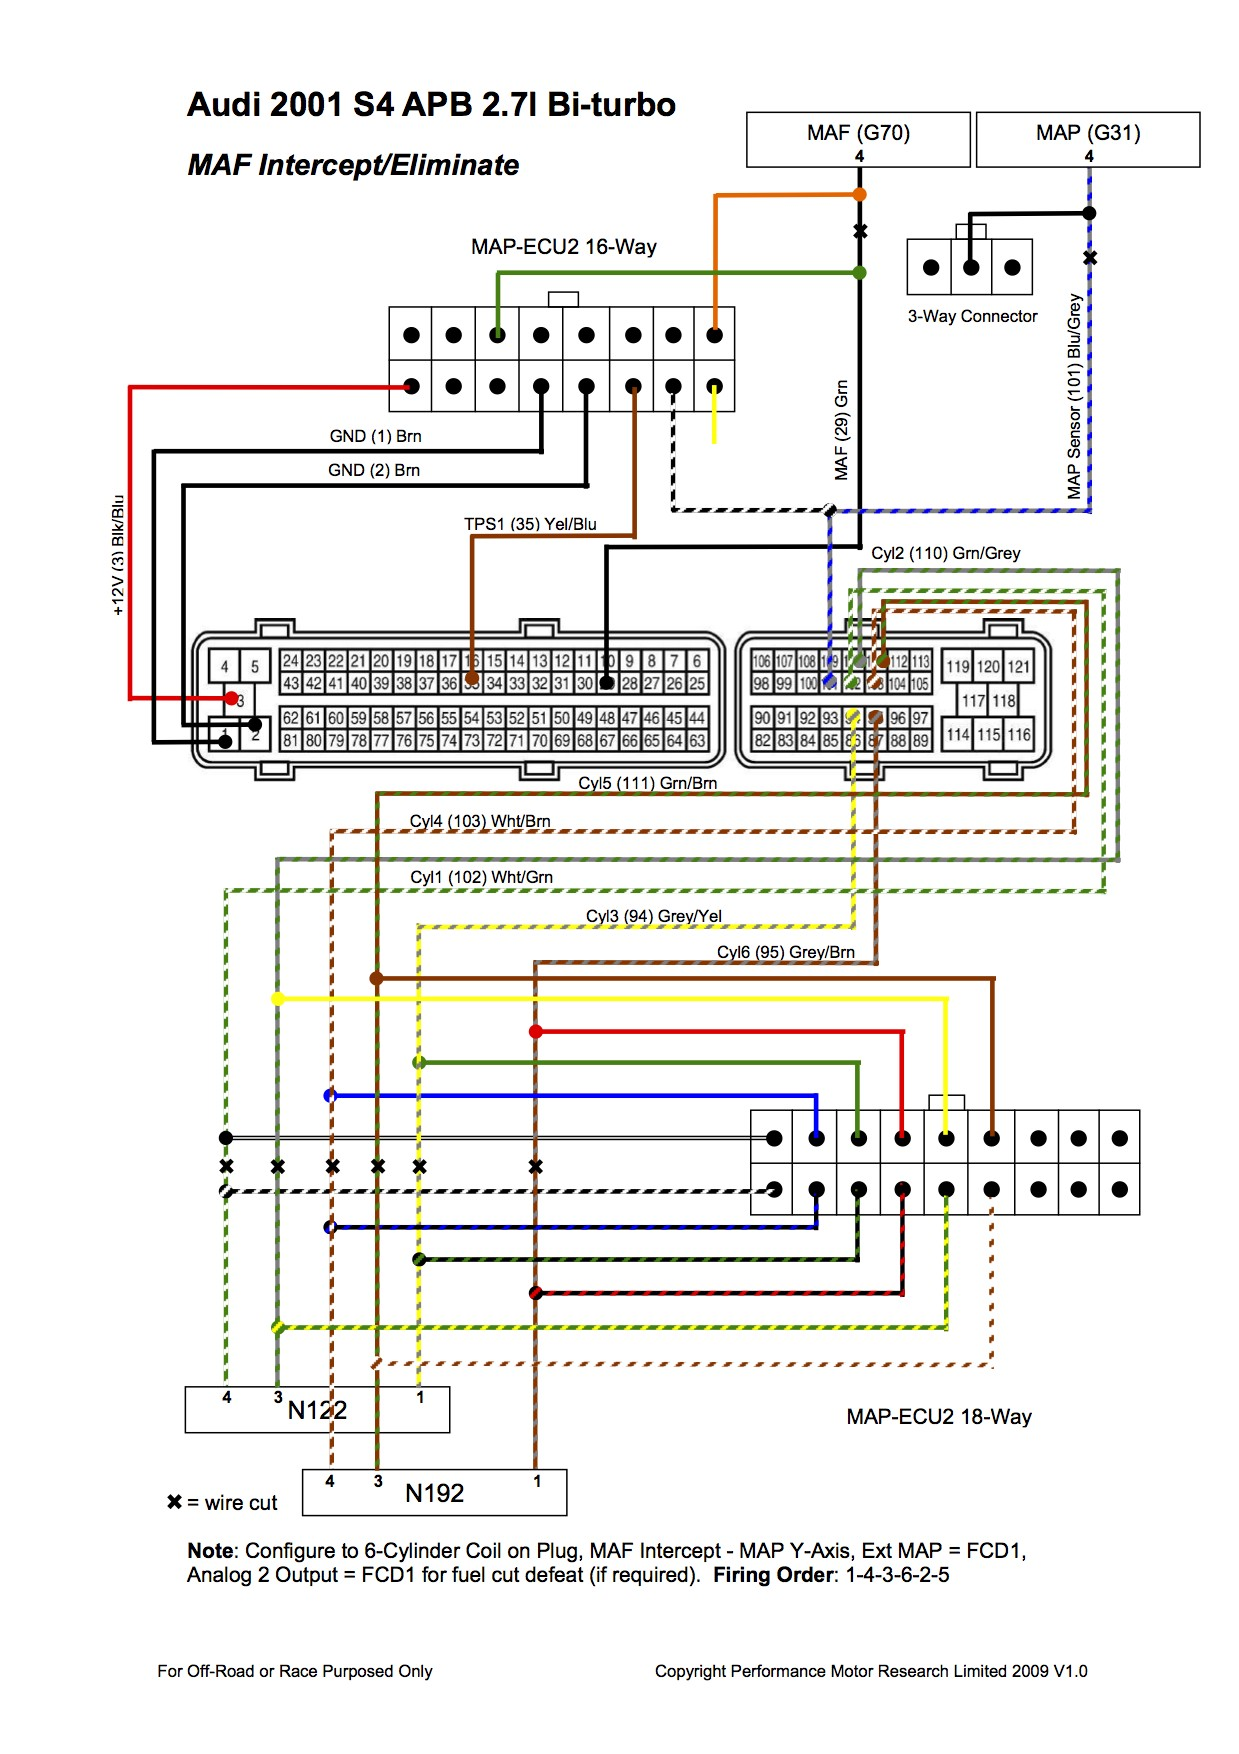 Mahindra 485 Wiring Diagram - Service Repair Manual on yamaha diagram, club car diagram, naza diagram, smart diagram, dodge diagram, mercury diagram, jeep diagram, kinetic diagram, koenigsegg diagram, peterbilt truck diagram, jaguar diagram, caterpillar diagram, harley davidson diagram, bmw diagram, lamborghini diagram, polaris diagram, mercedes-benz diagram, ford diagram, honda diagram,